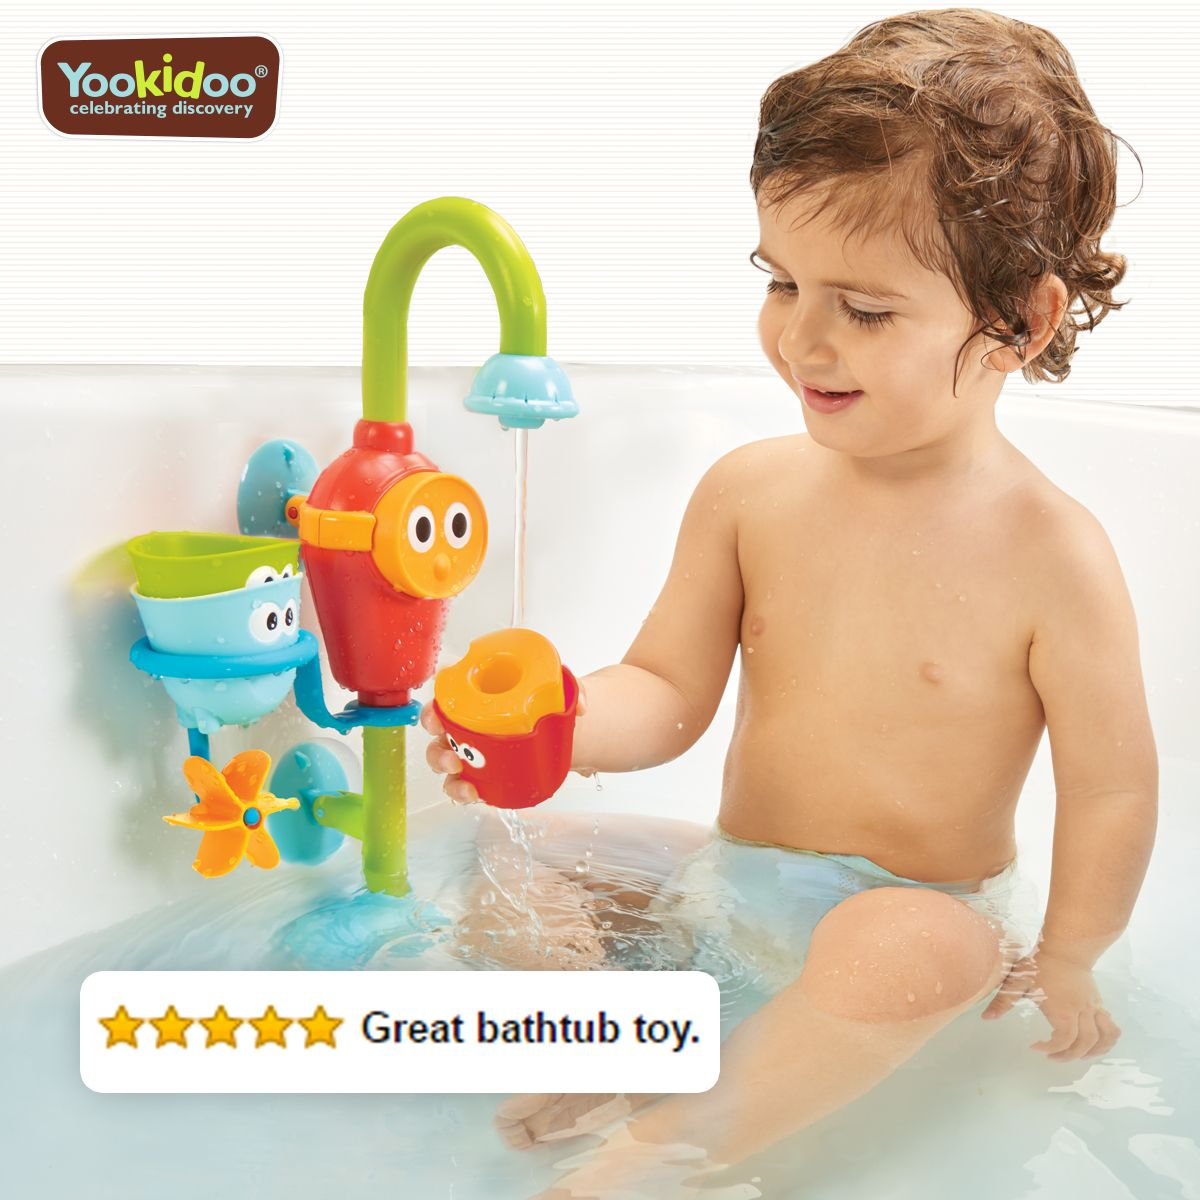 Best bathtub toy, available at Baby bath